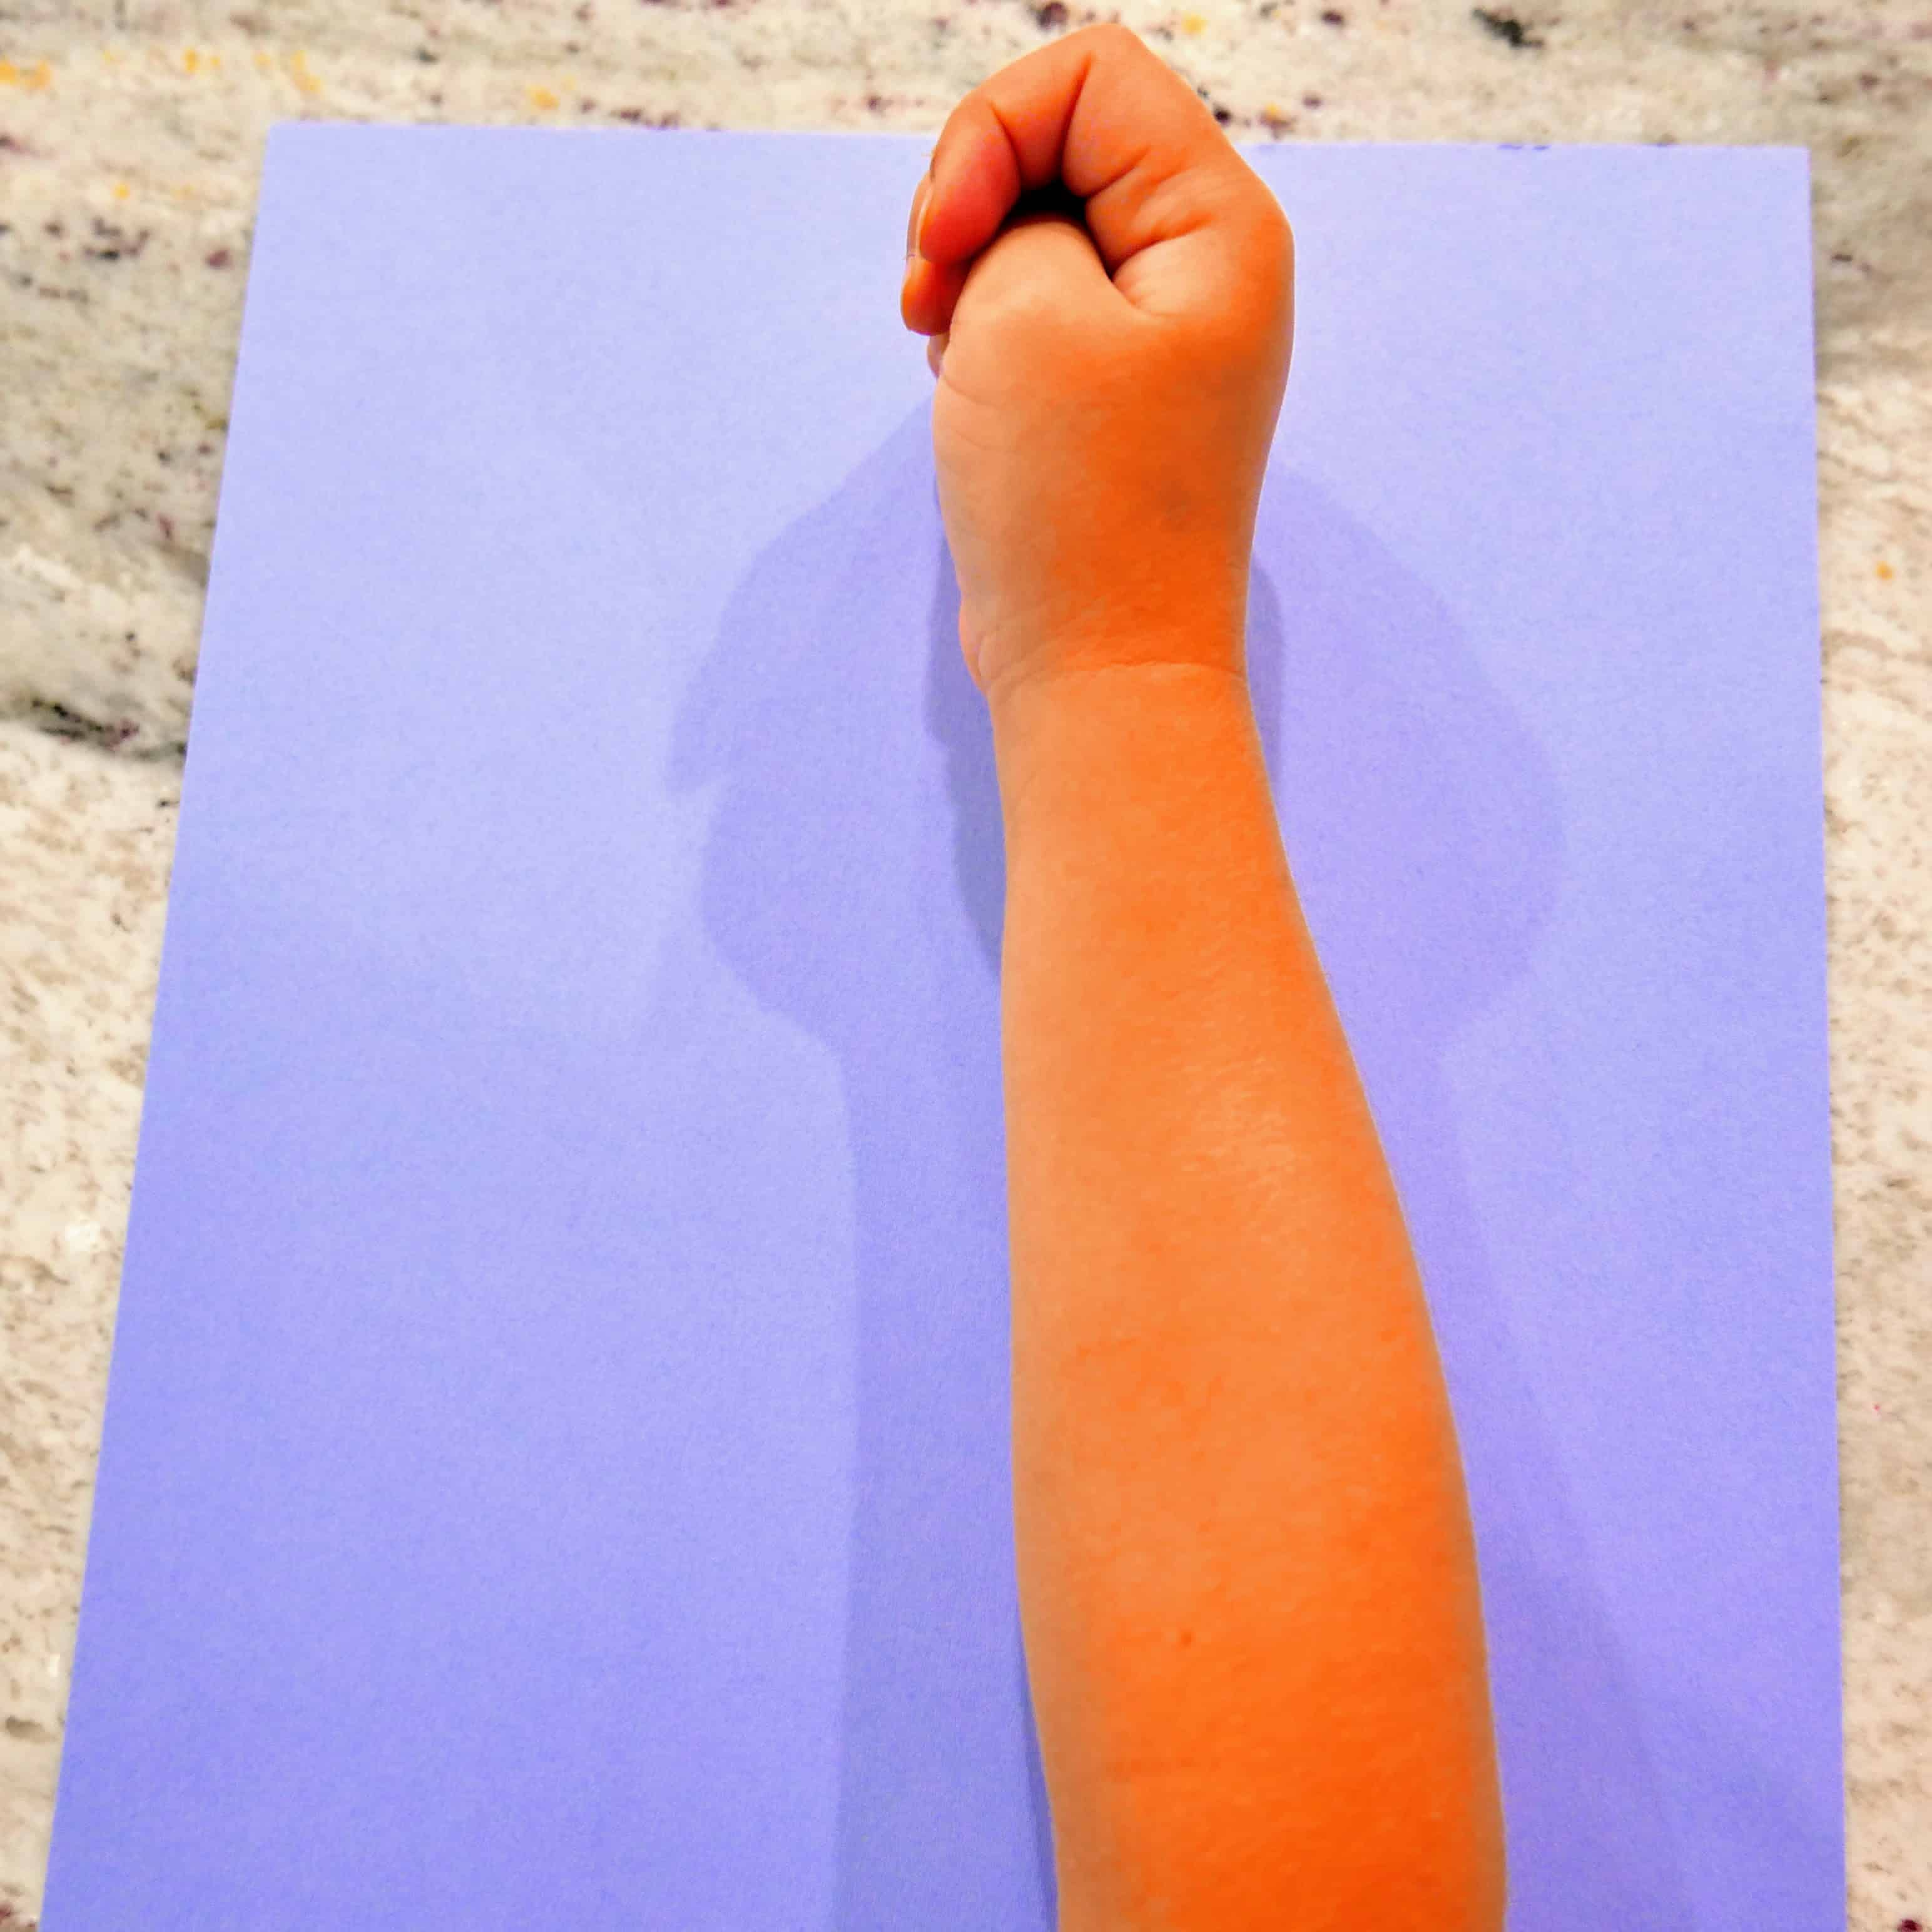 child's arm on top of cardstock paper